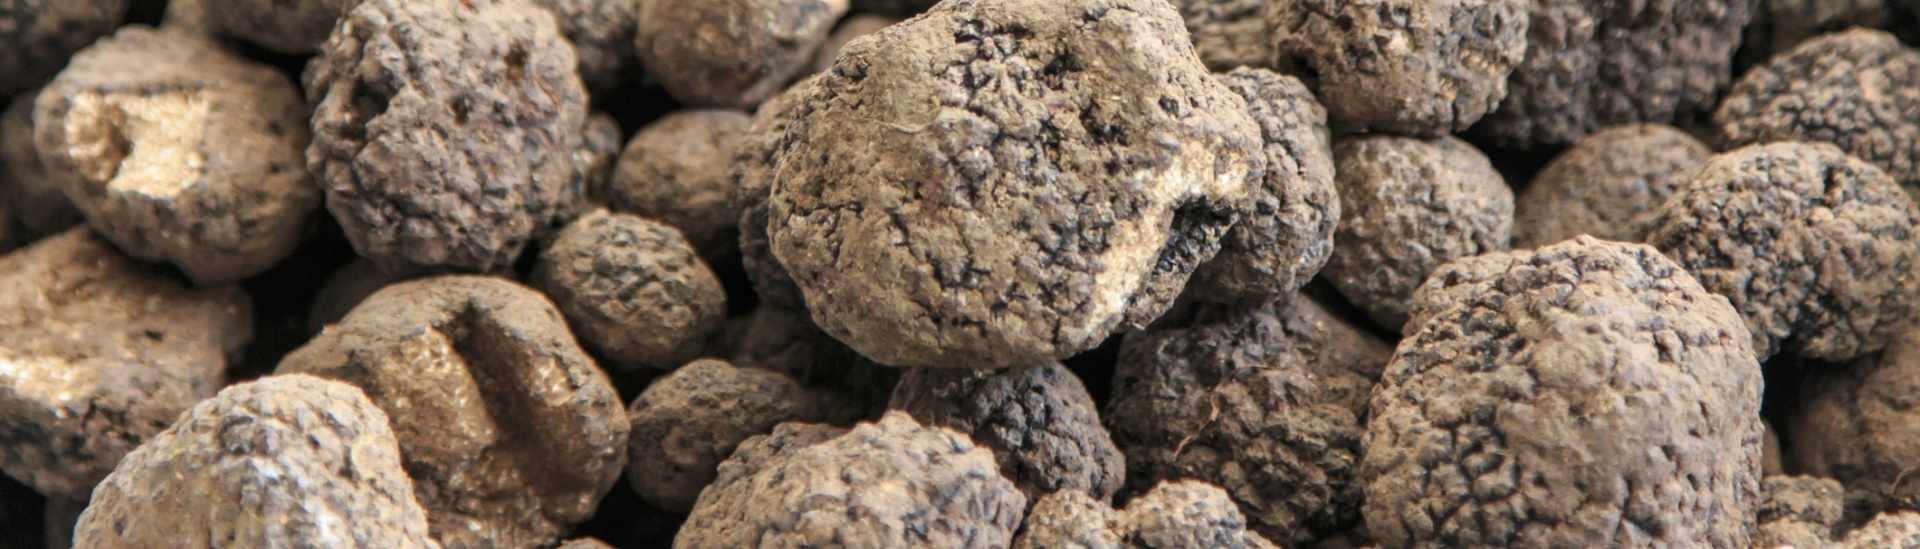 Cultivating Truffles